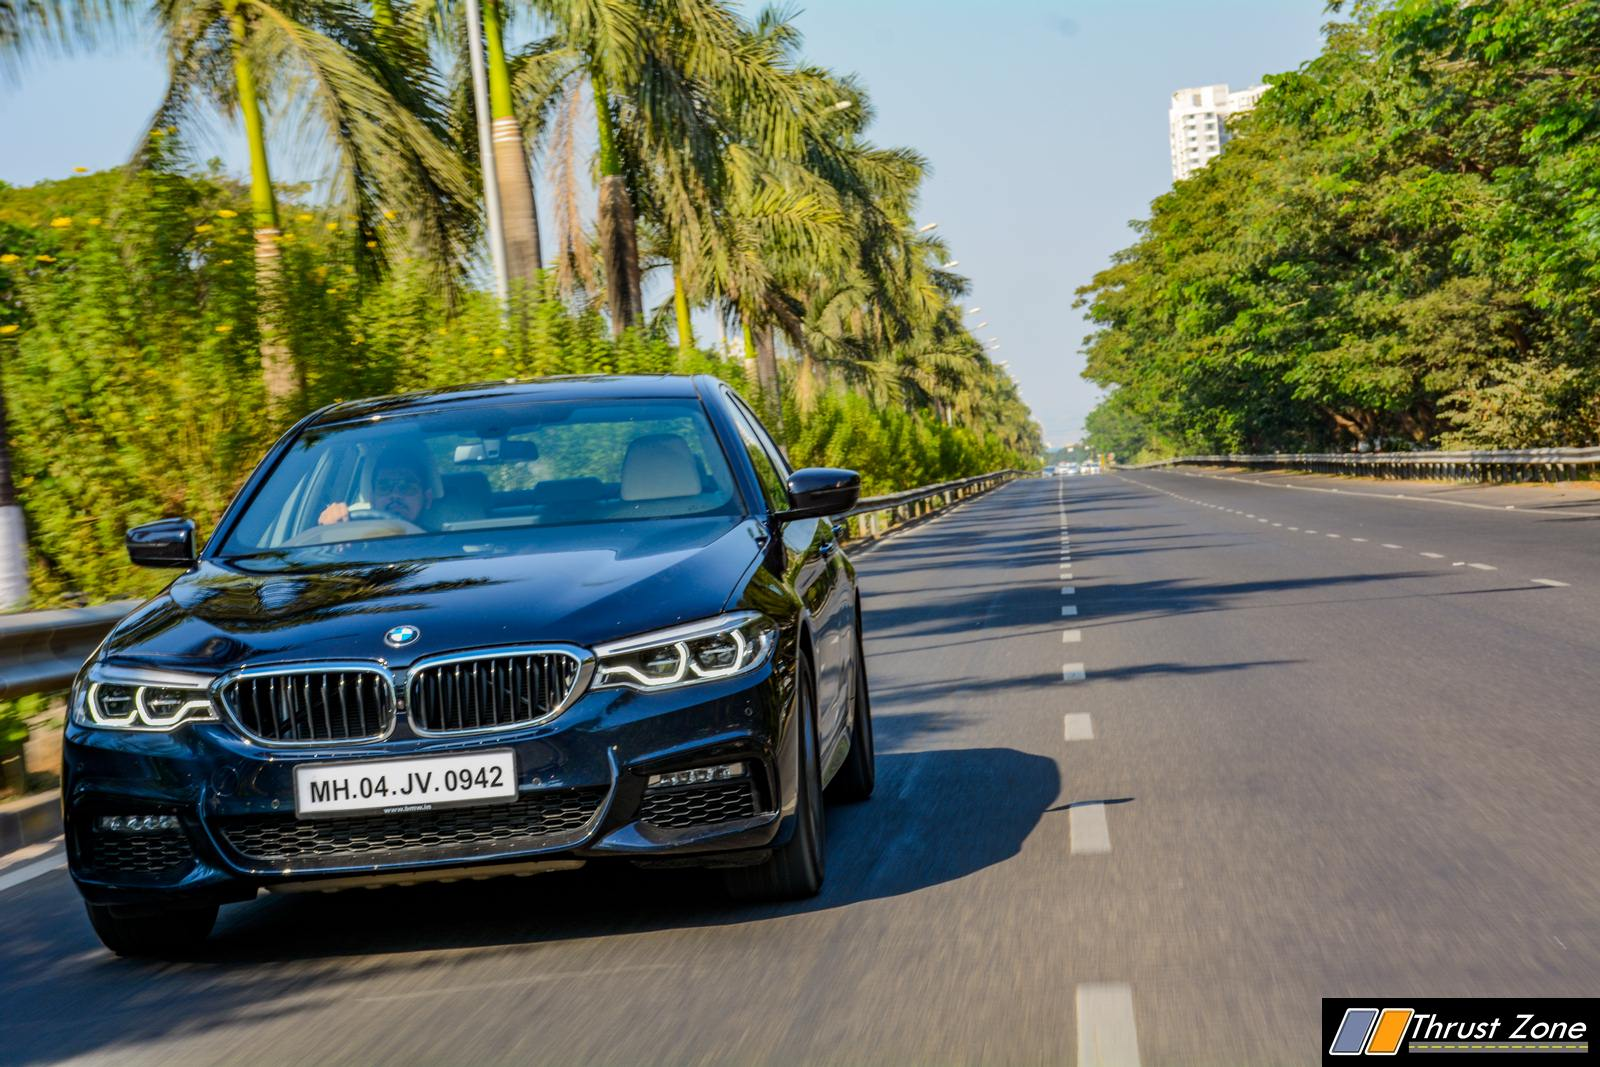 http://www.thrustzone.com/wp-content/uploads/2019/01/2018-BMW-530d-India-Review-8.jpg